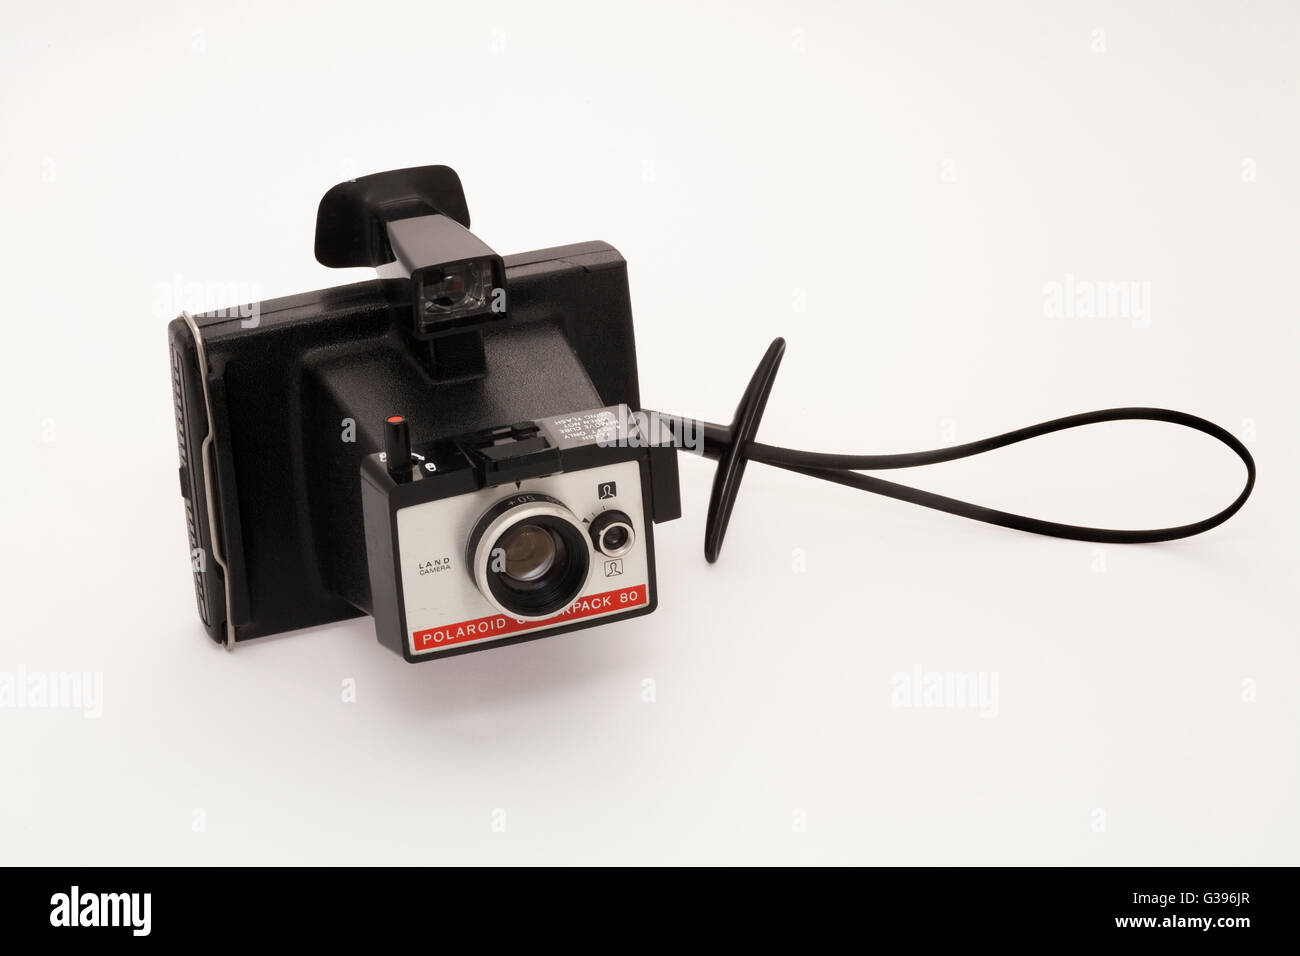 Polaroid ' Colorpack 80 ' Land camera from the 1970s, taking ' instant ' peel - apart  colour and - Stock Image